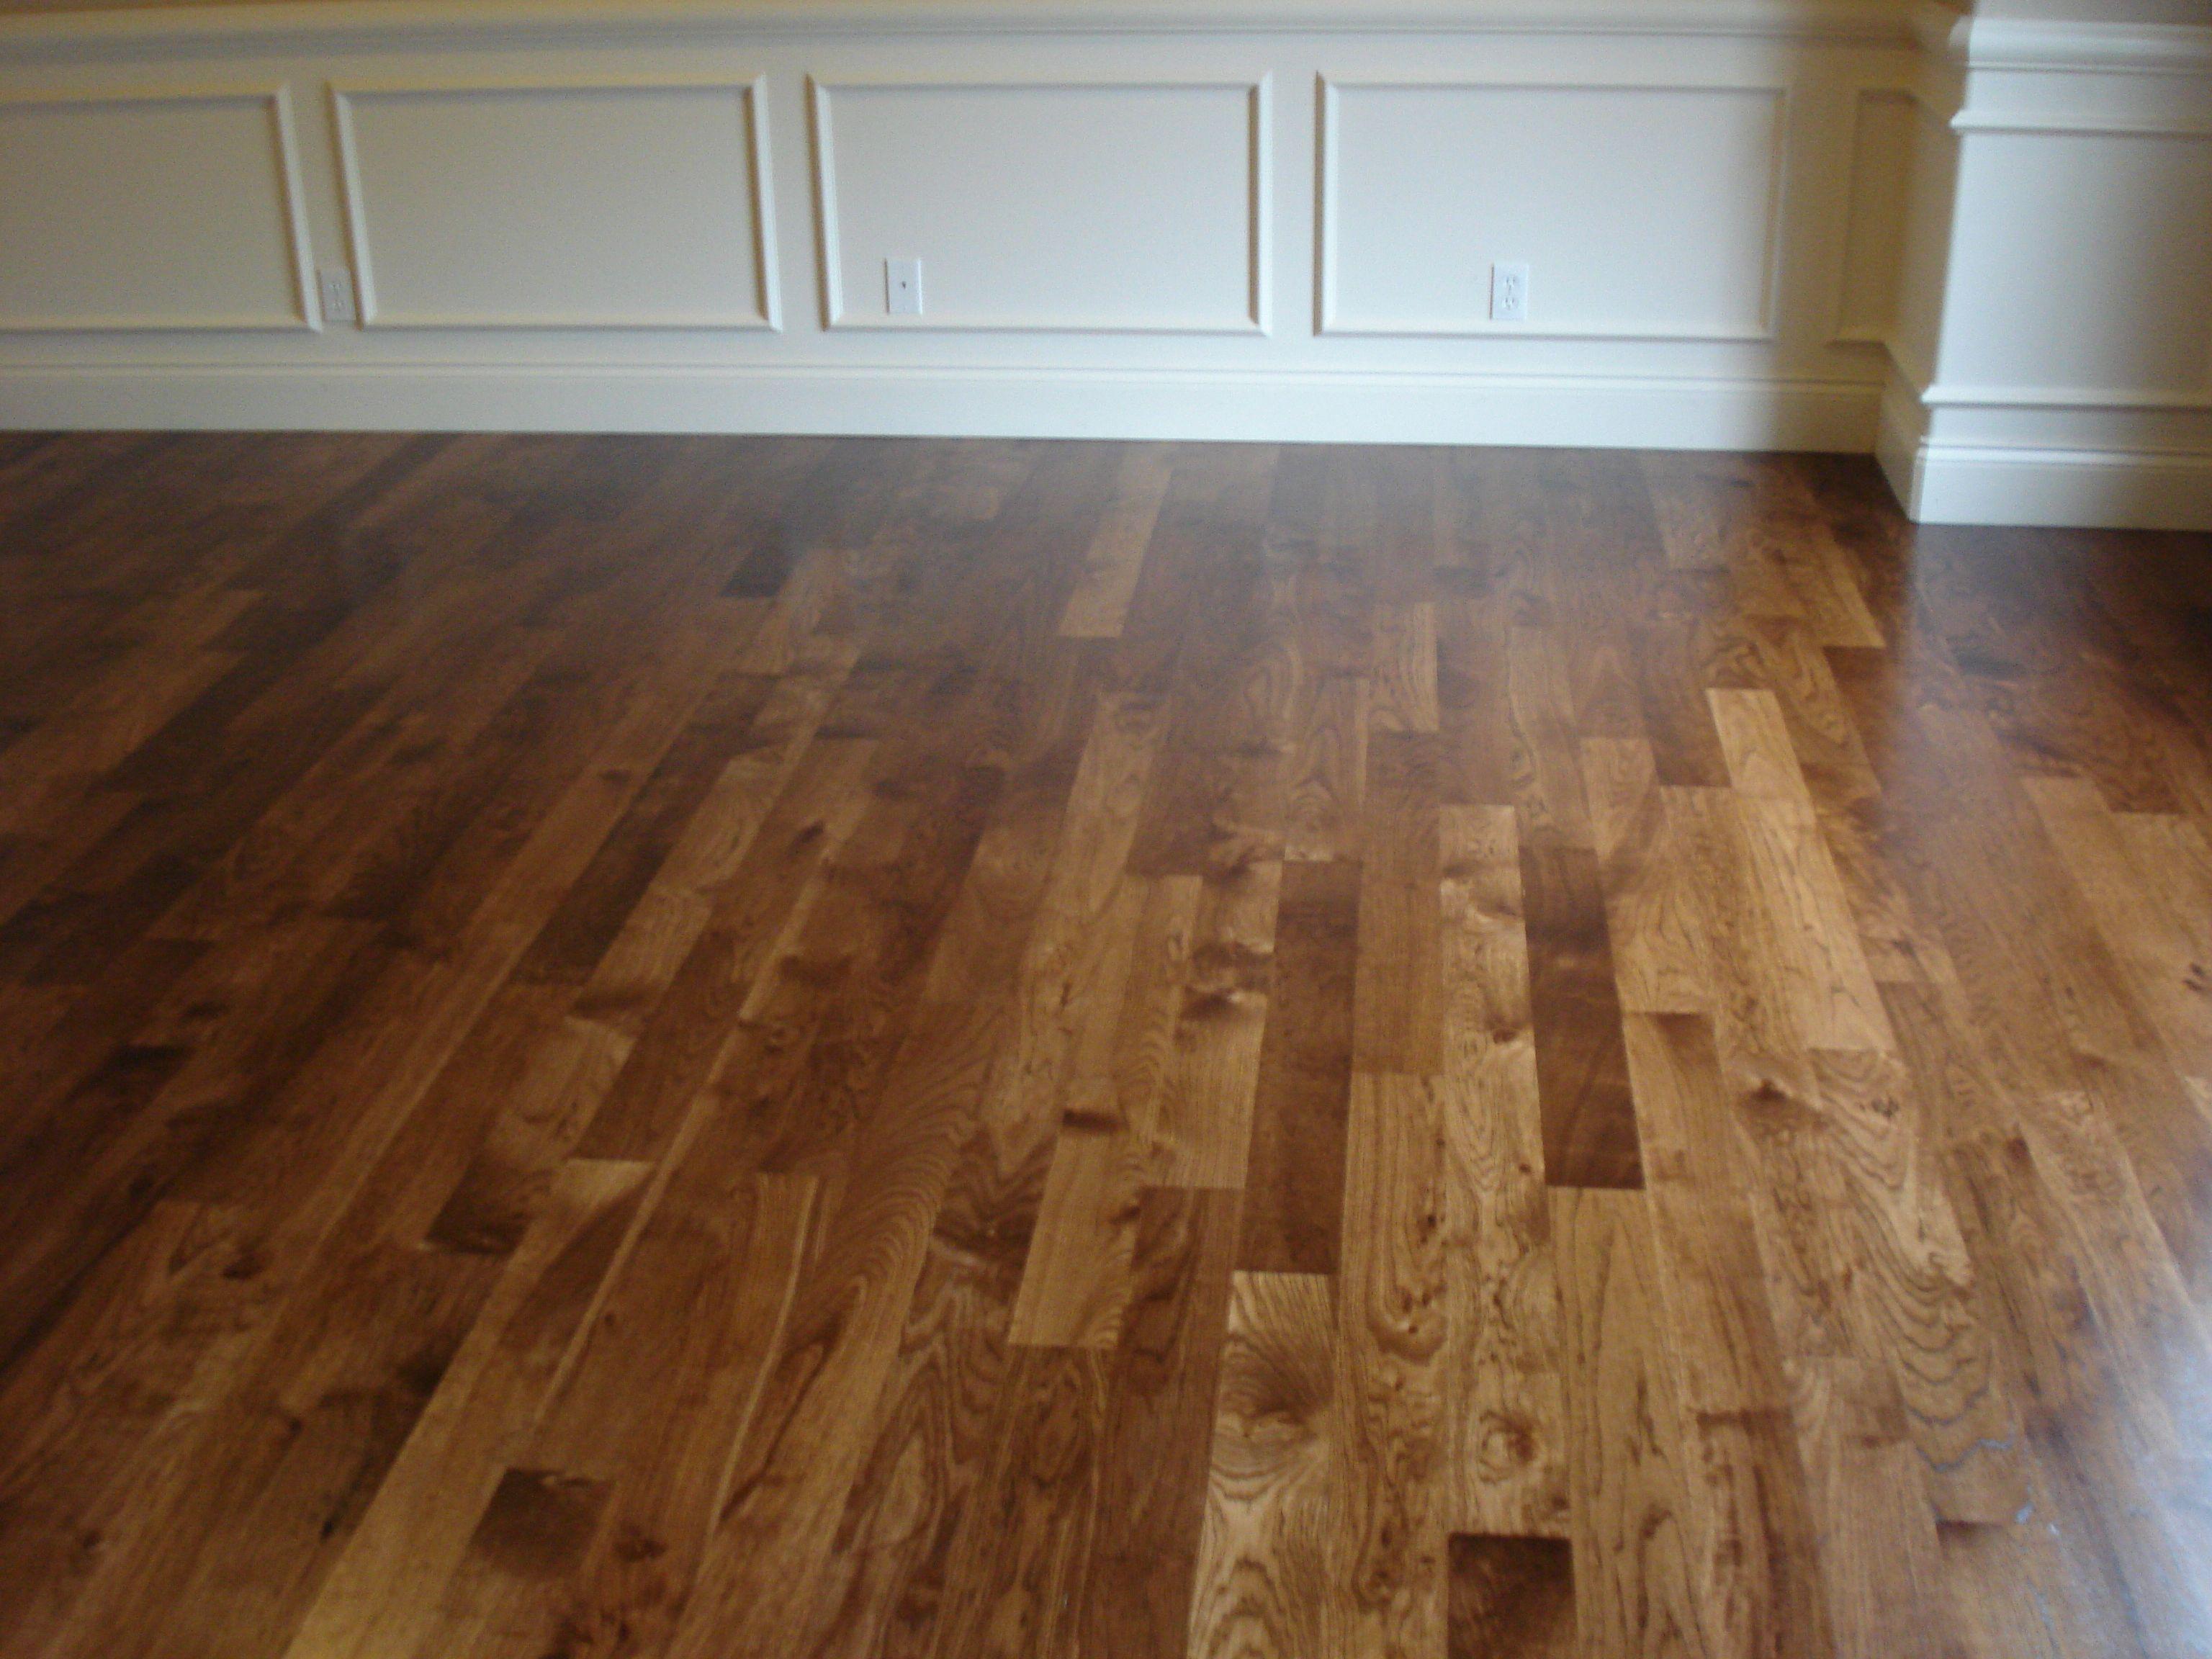 Hardwood flooring examples of hardwood floor rooms that for Hardwood floors examples